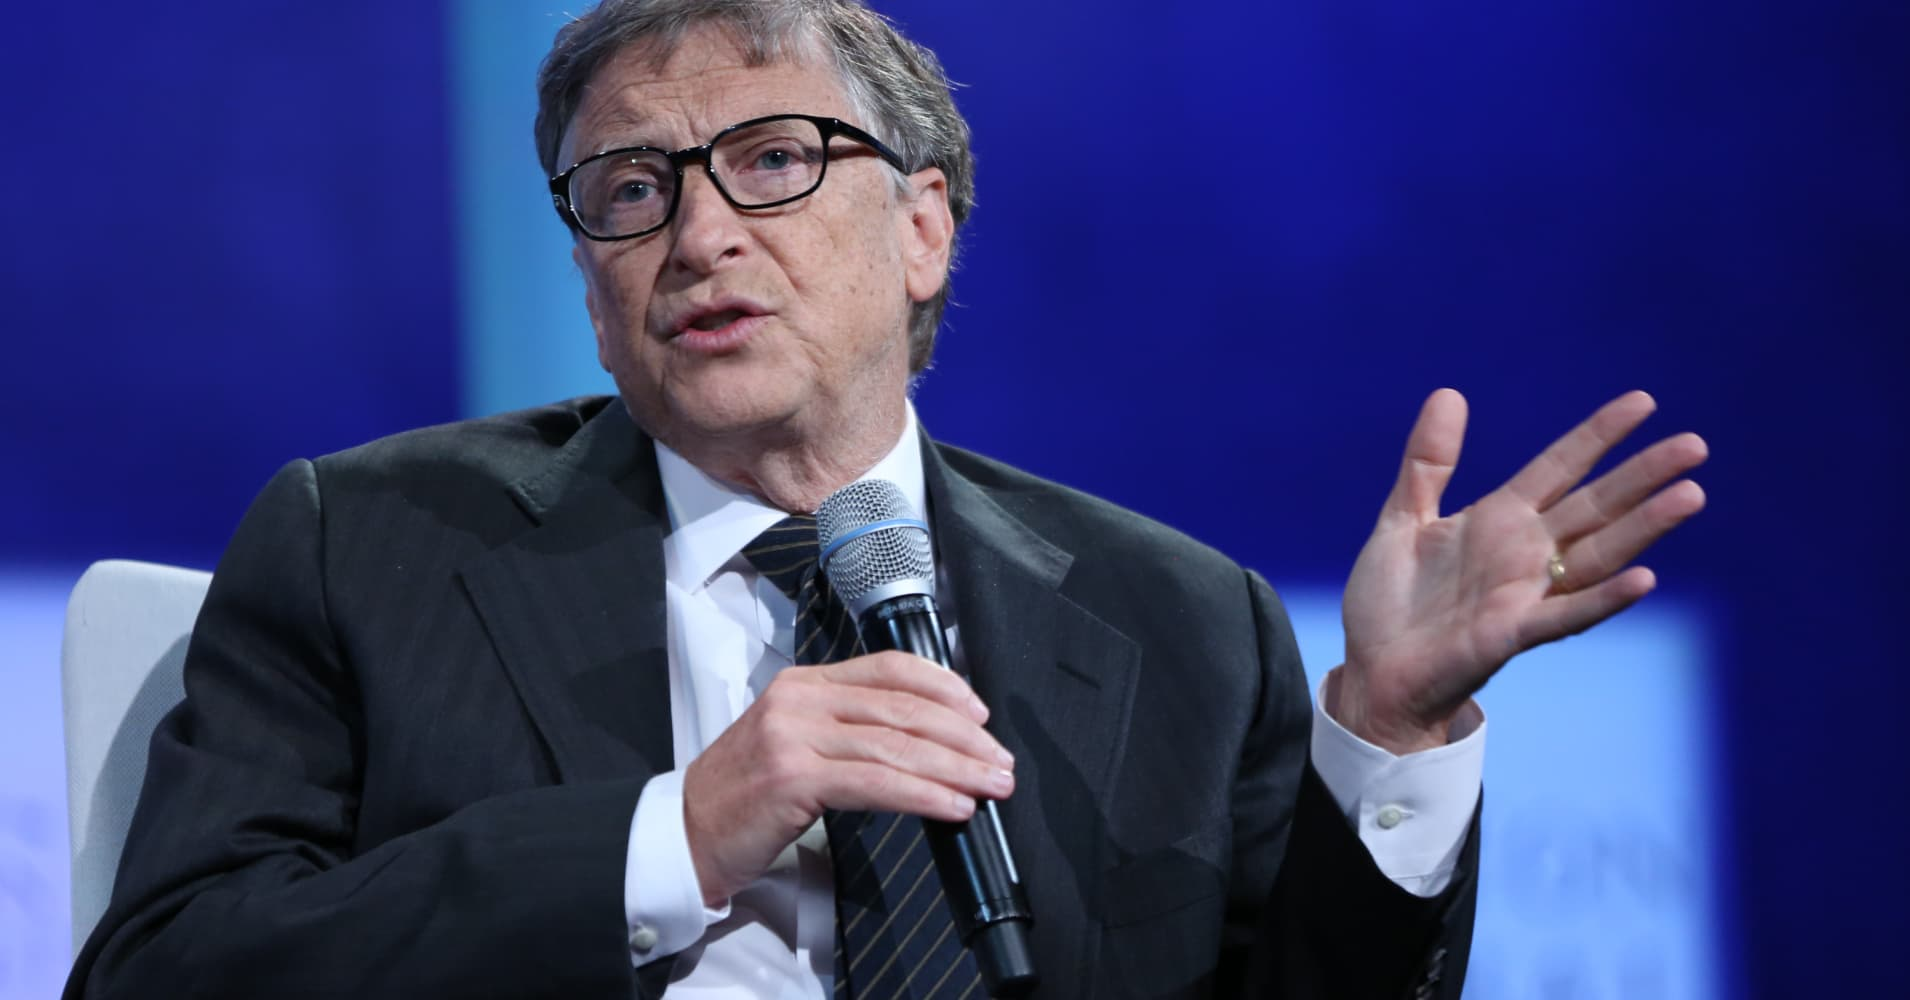 Bill Gates at the 2015 CGI Annual Meeting in New York